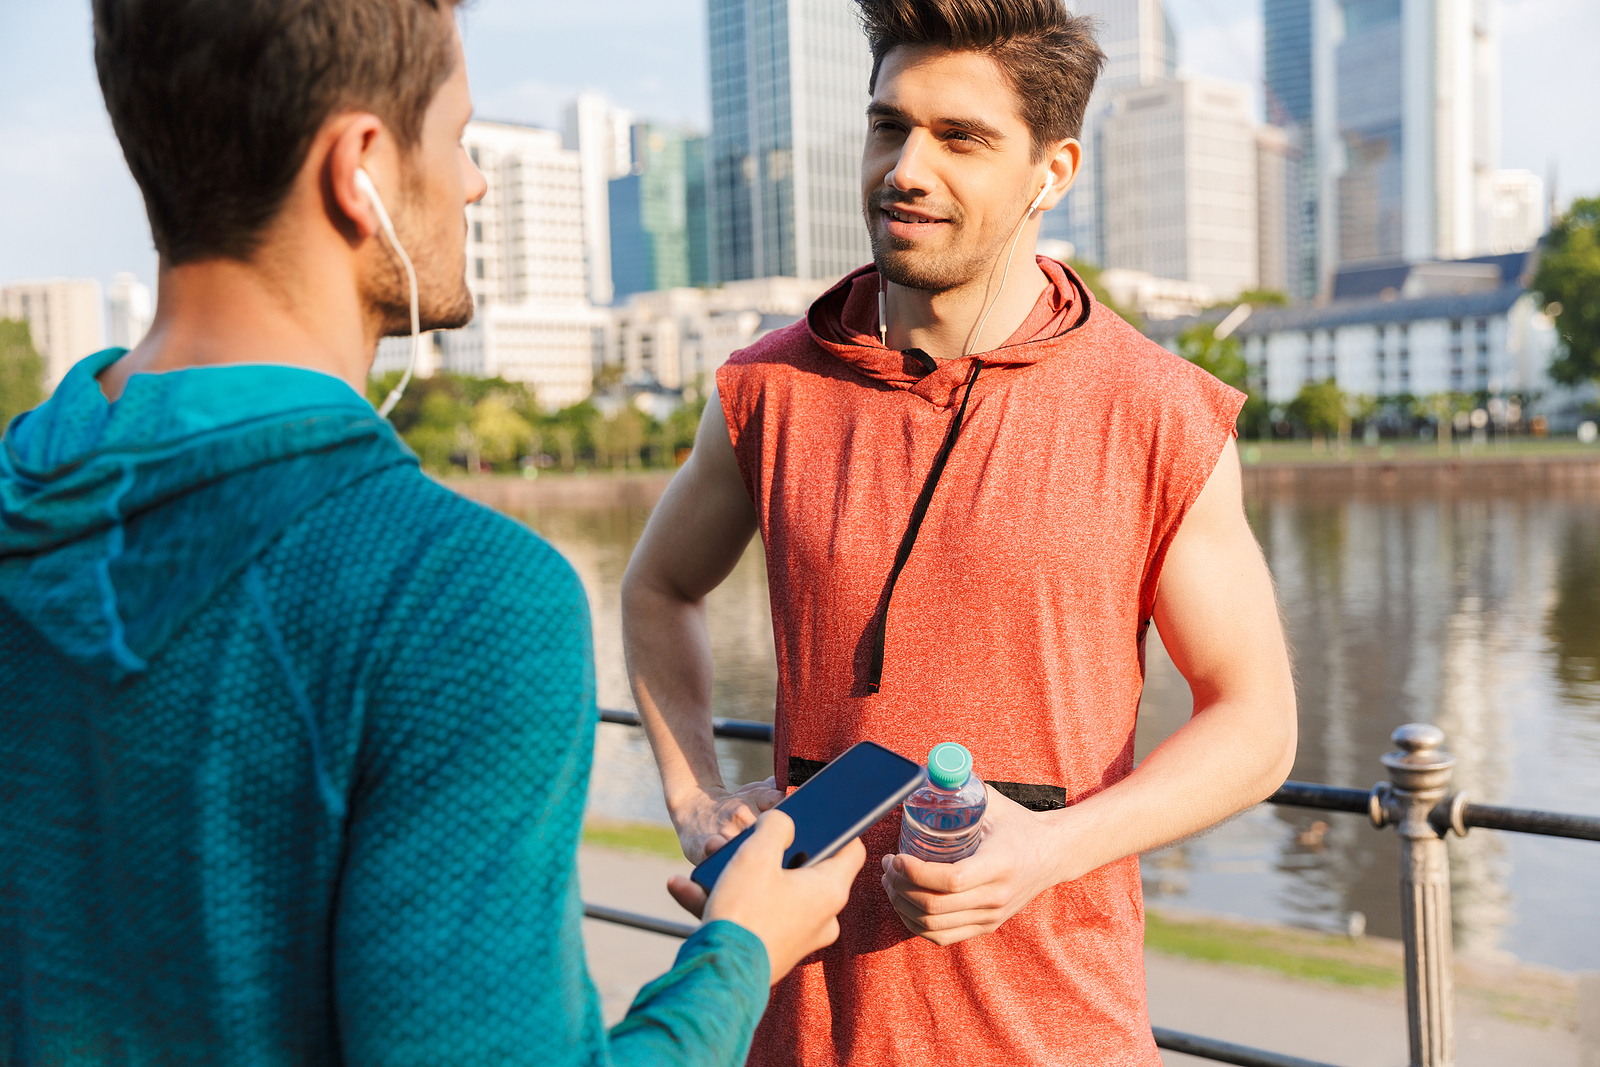 Photo of 2 young white guys with workout clothes both talking to each other near a lake in the city.